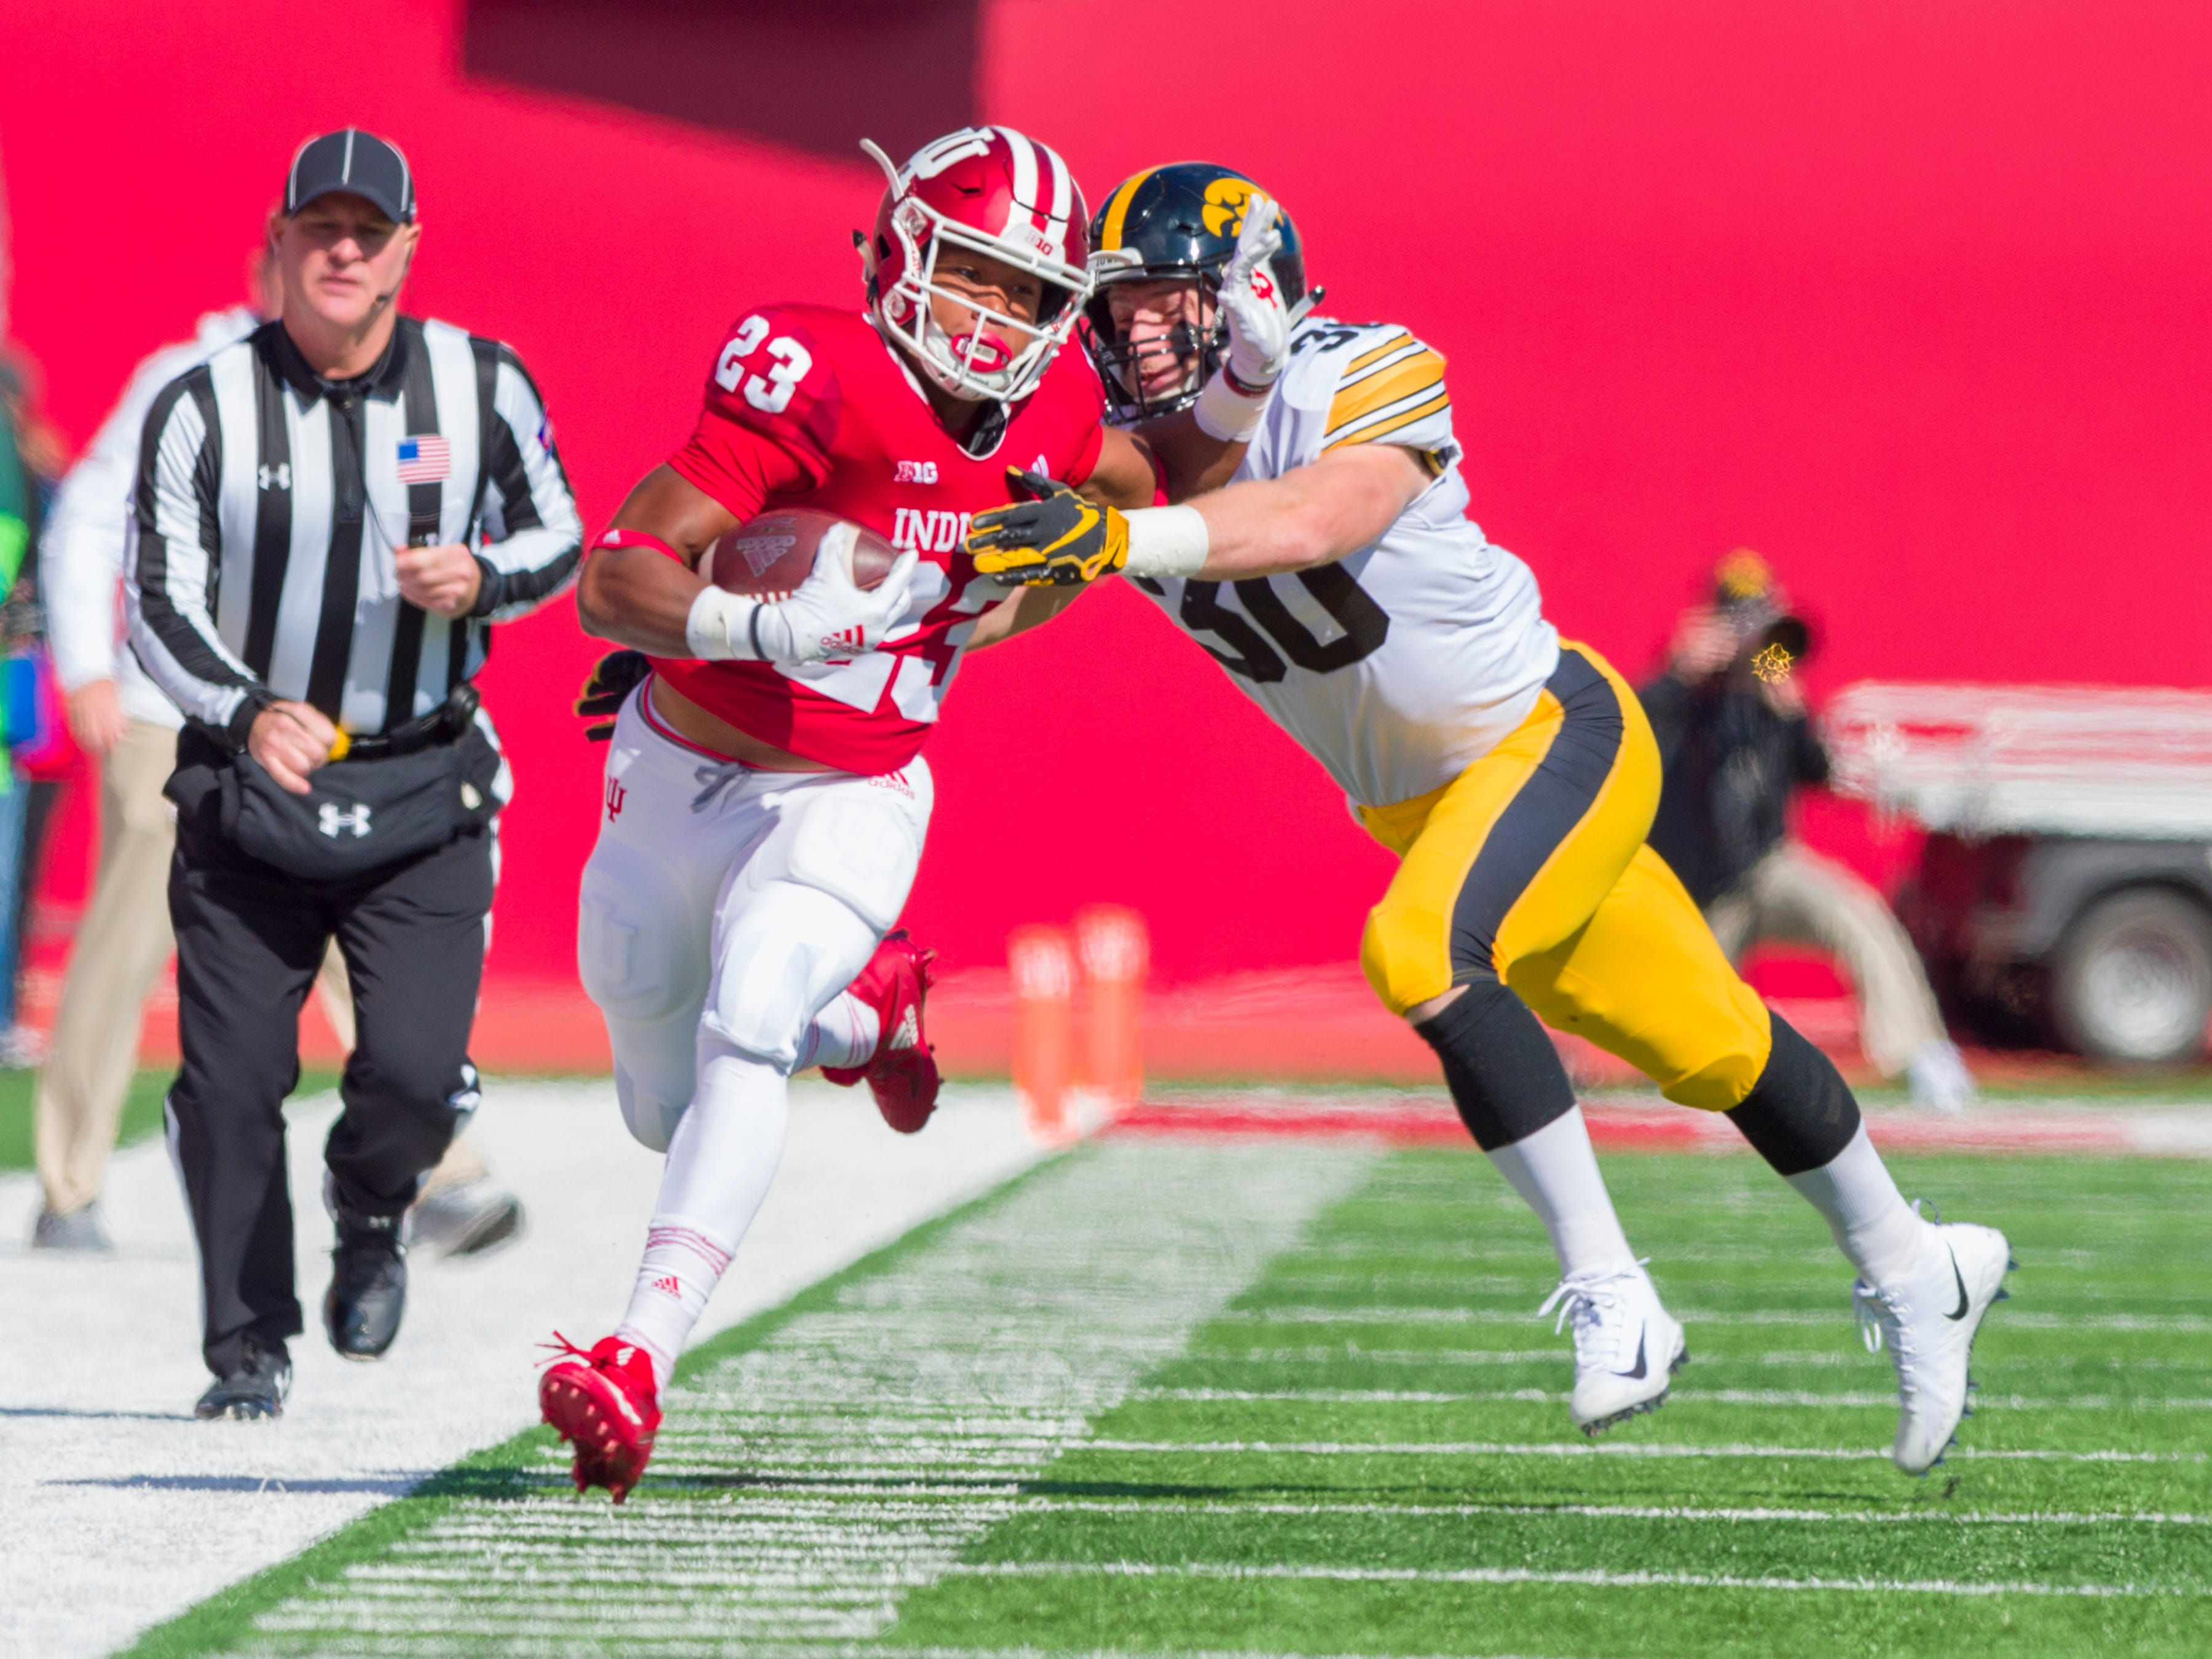 Indiana running back Ronnie Walker Jr. (23) runs the ball up the sideline as he's grabbed by Iowa defensive back Jake Gervase (30) during the first half of an NCAA college football game Saturday, Oct. 13, 2018, in Bloomington, Ind. (AP Photo/Doug McSchooler)